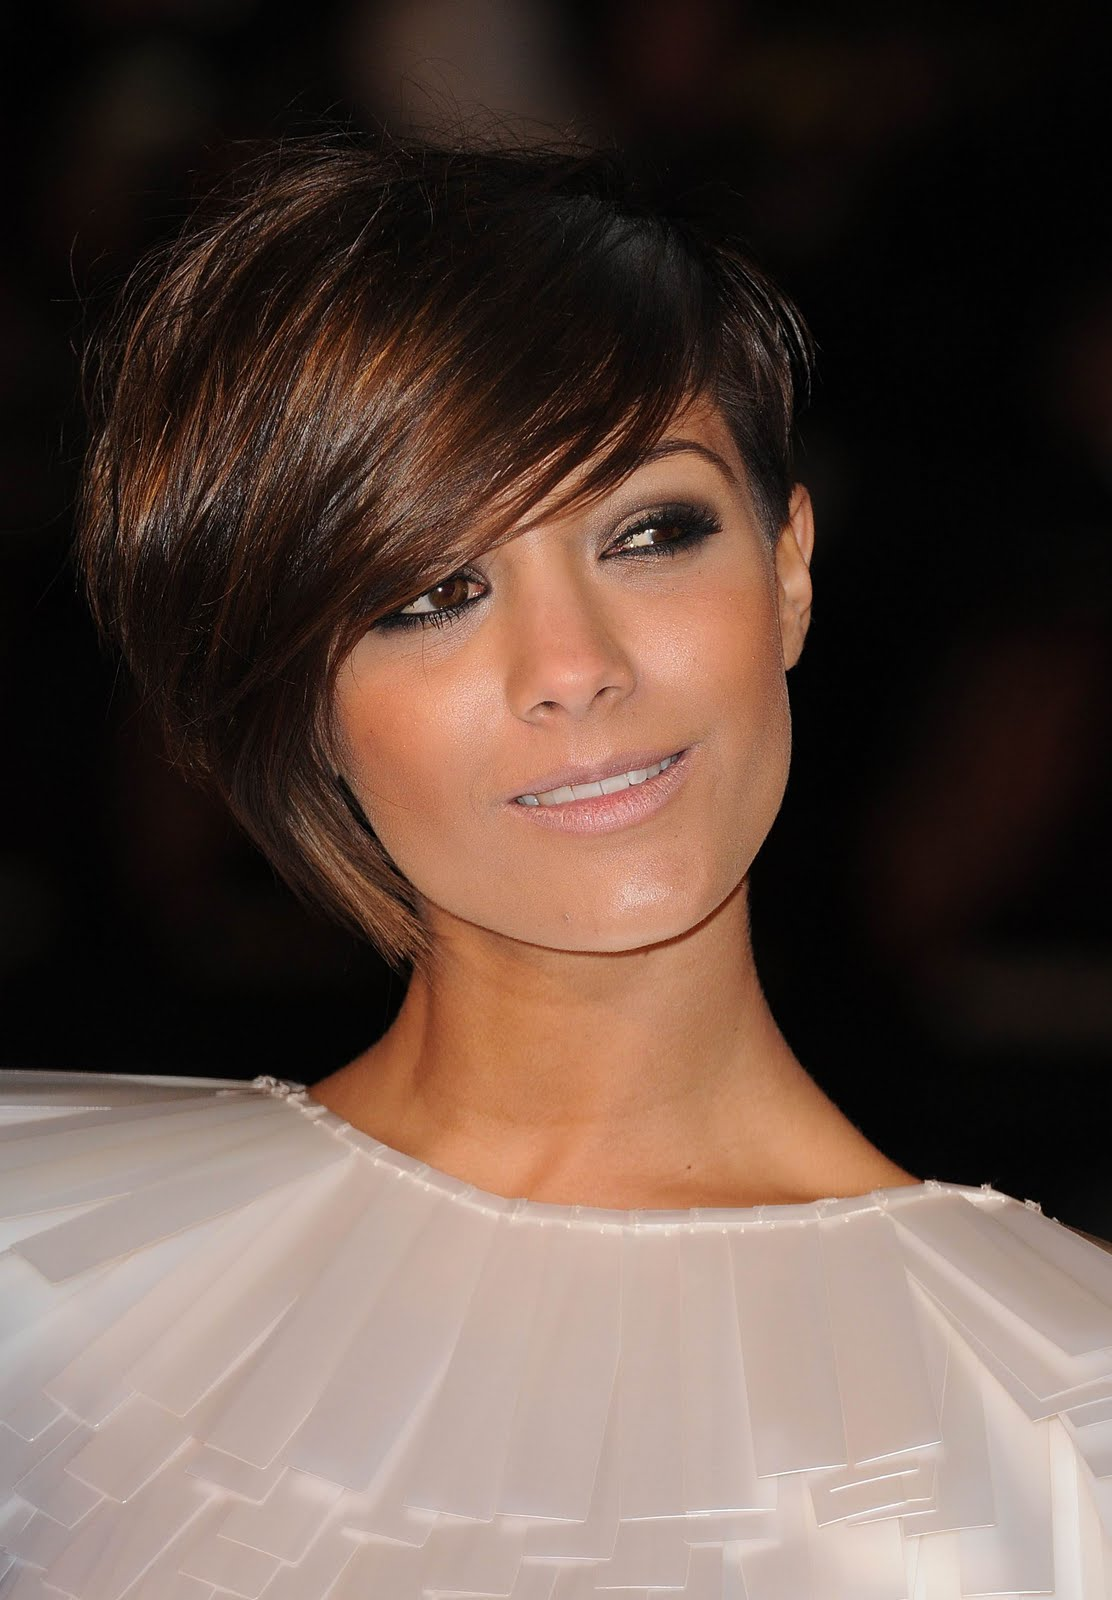 Hairstyle Pictures Of Frankie Sandford  Hair Fashion 2012